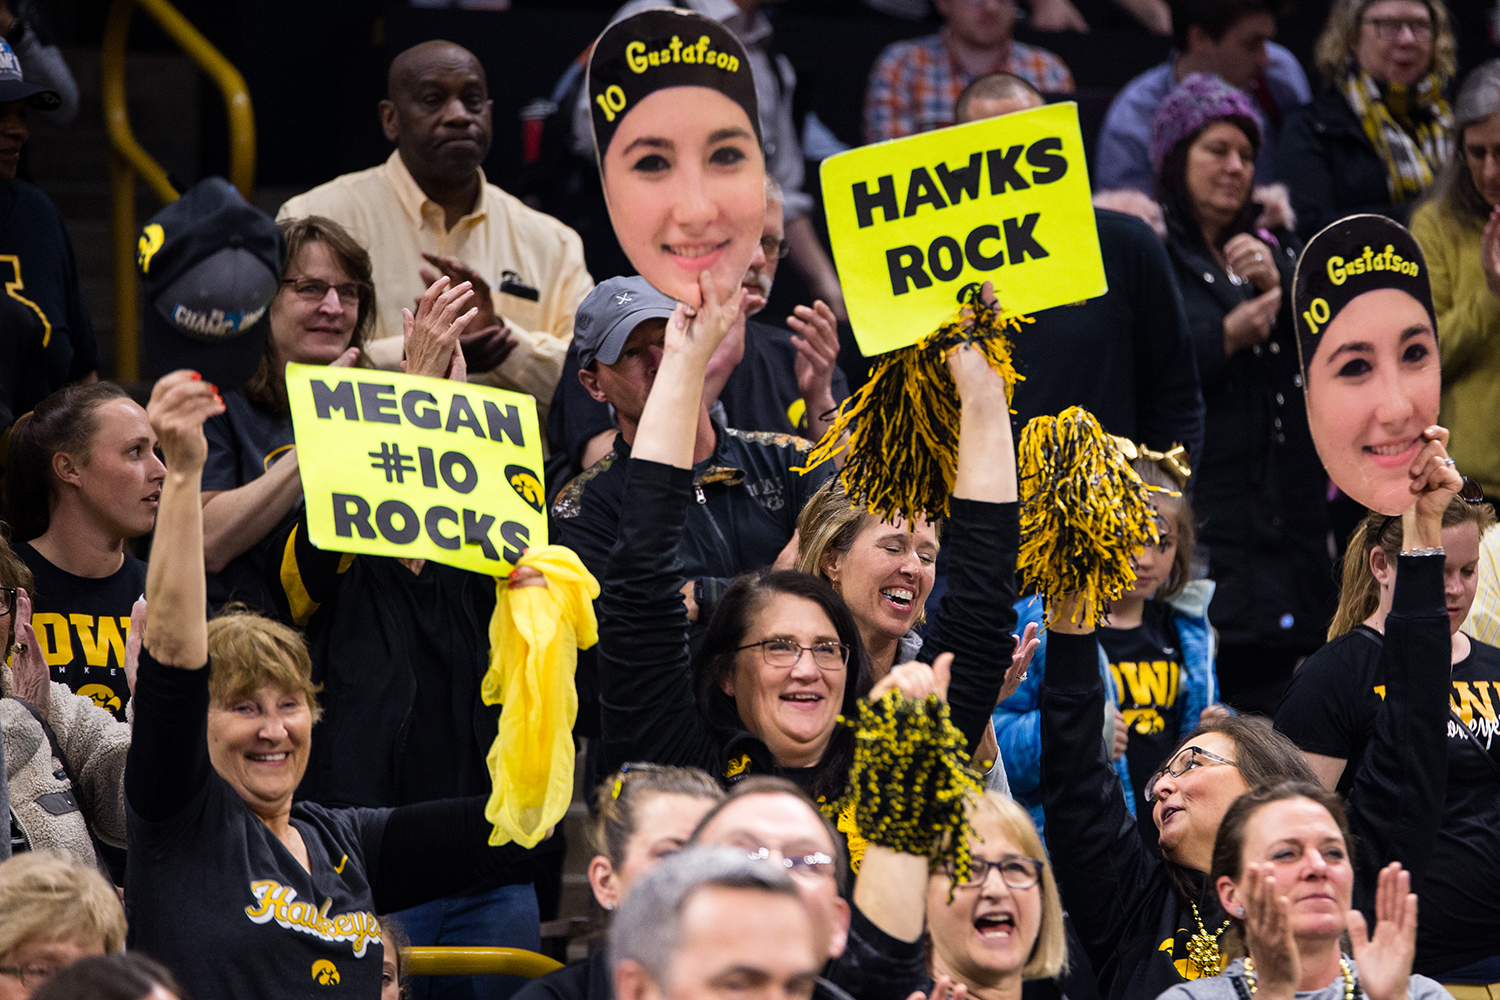 Iowa+center+Megan+Gustafson+%2810%29+family+cheers+her+on+after+the+Iowa%2FMissouri+NCAA+Tournament+second+round+women%E2%80%99s+basketball+game+in+Carver-Hawkeye+Arena+in+Iowa+City%2C+Iowa+on+Sunday%2C+March+24%2C+2019.+The+Hawkeyes+defeated+the+Tigers+68-52.